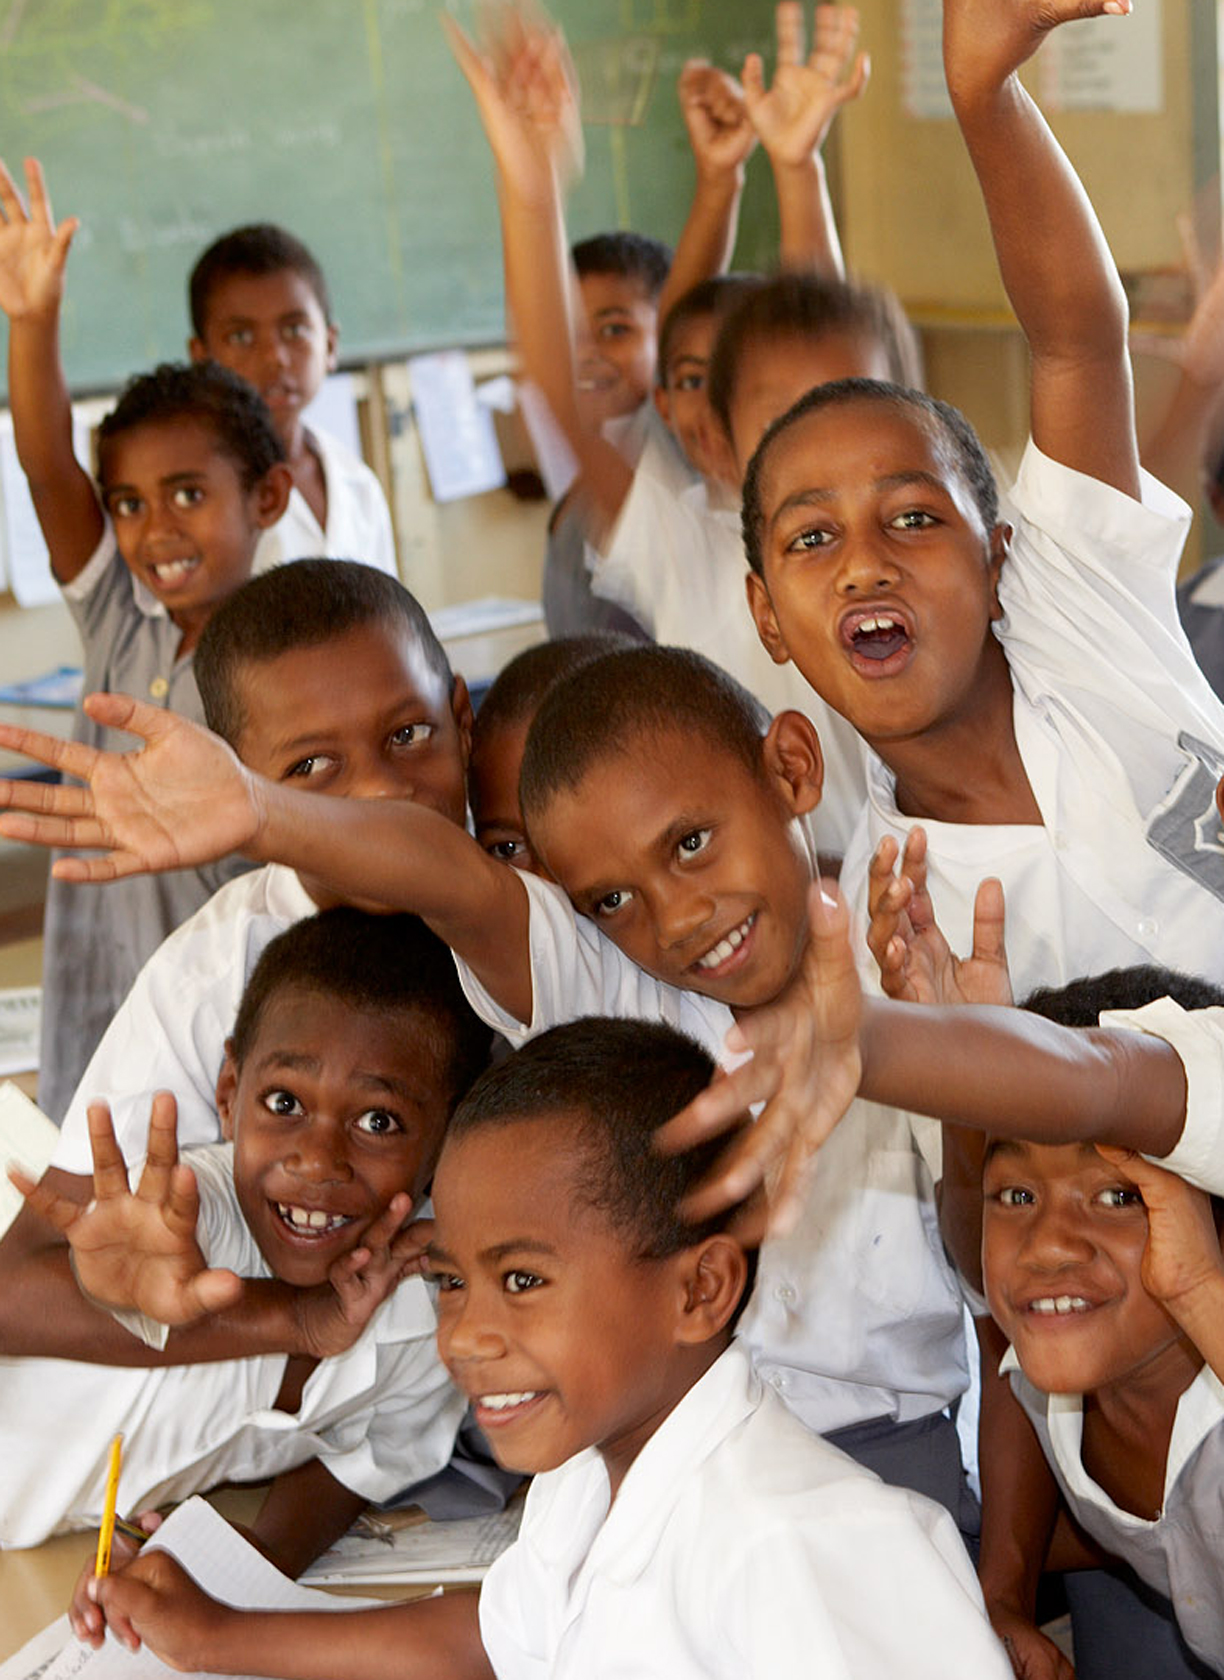 The school children of Fiji are delightful